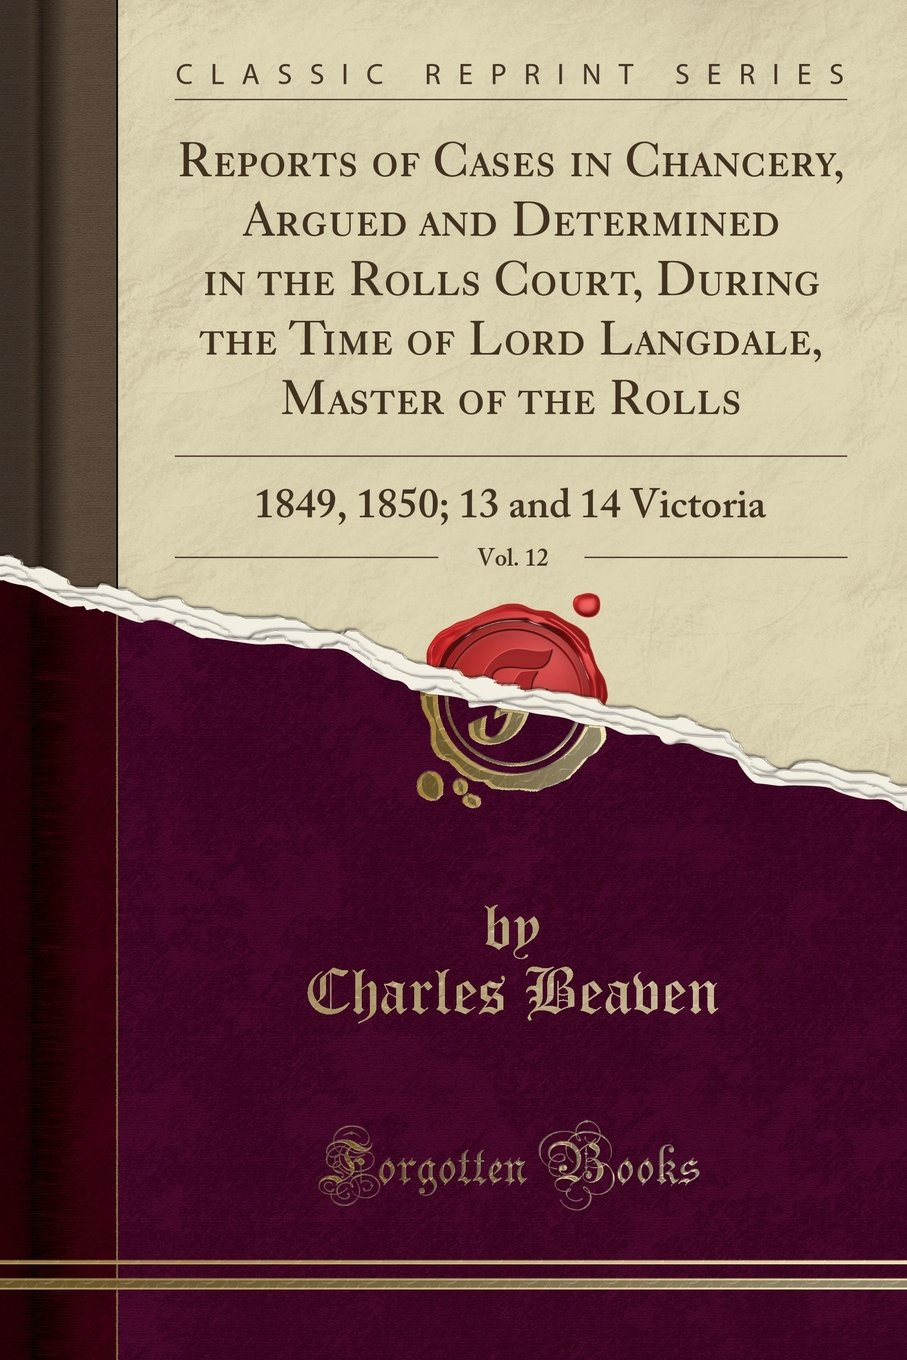 Read Online Reports of Cases in Chancery, Argued and Determined in the Rolls Court, During the Time of Lord Langdale, Master of the Rolls, Vol. 12: 1849, 1850; 13 and 14 Victoria (Classic Reprint) ebook